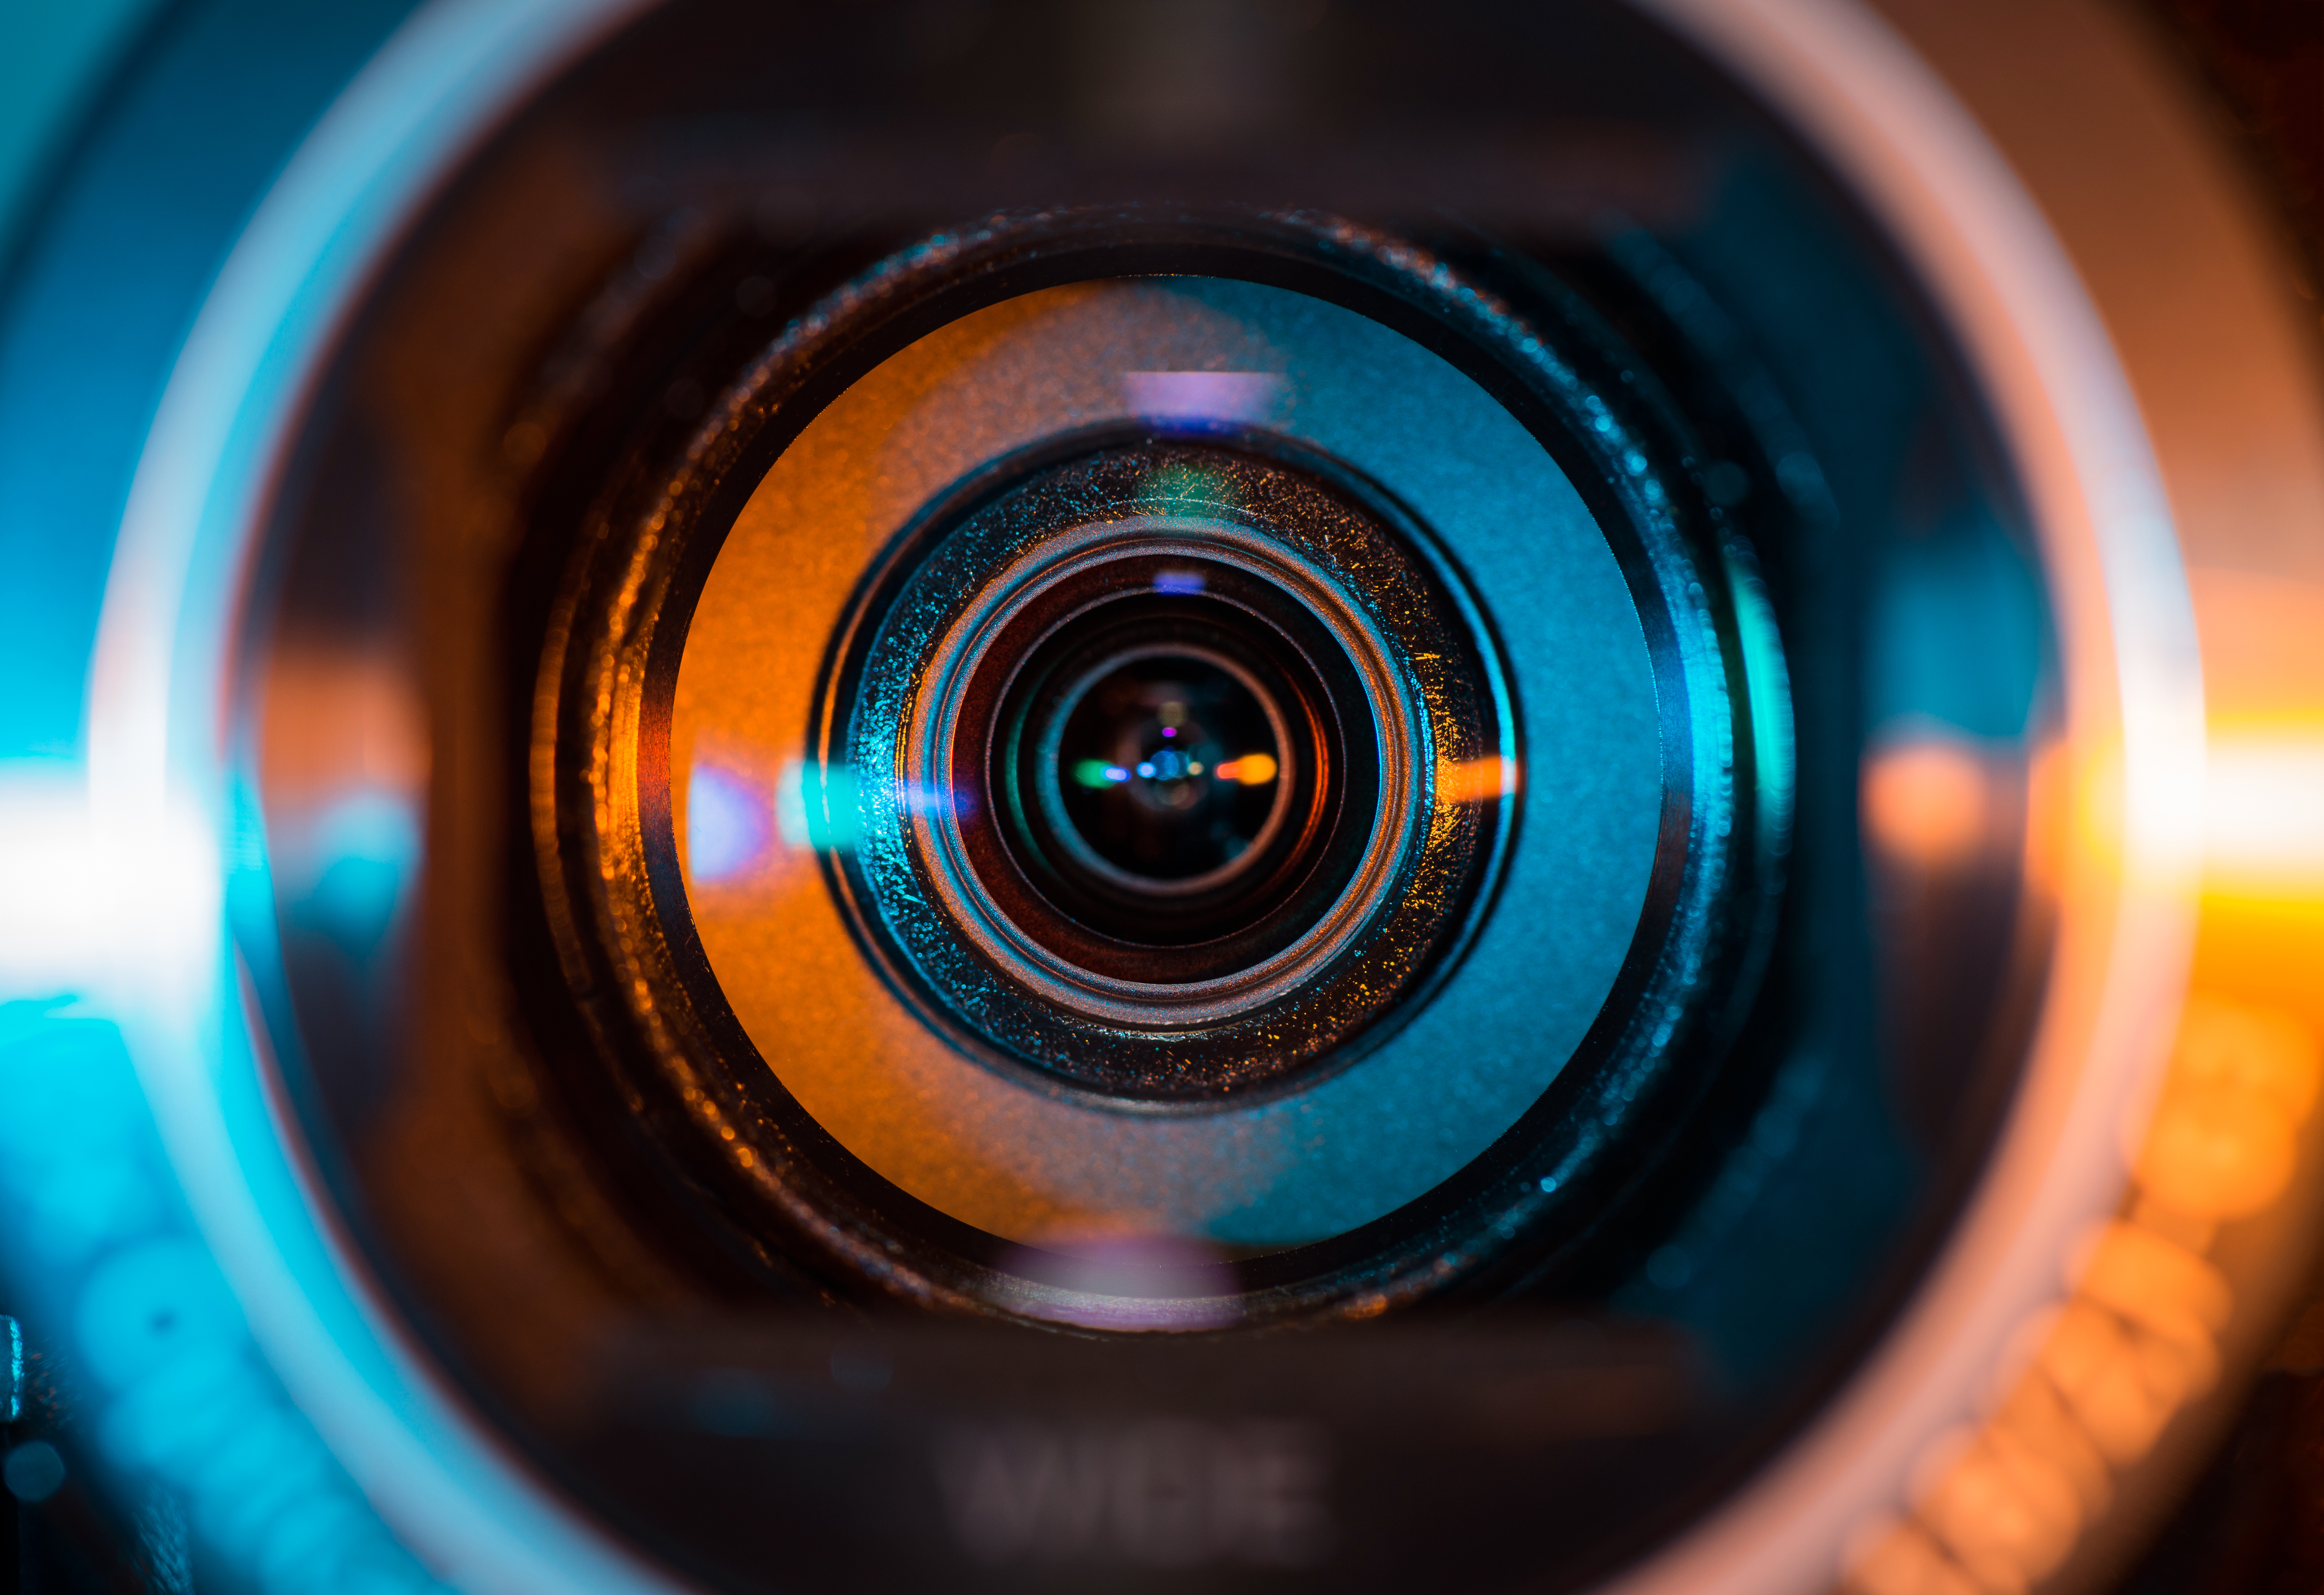 How to Calculate Focal Length of a Lens | Sciencing